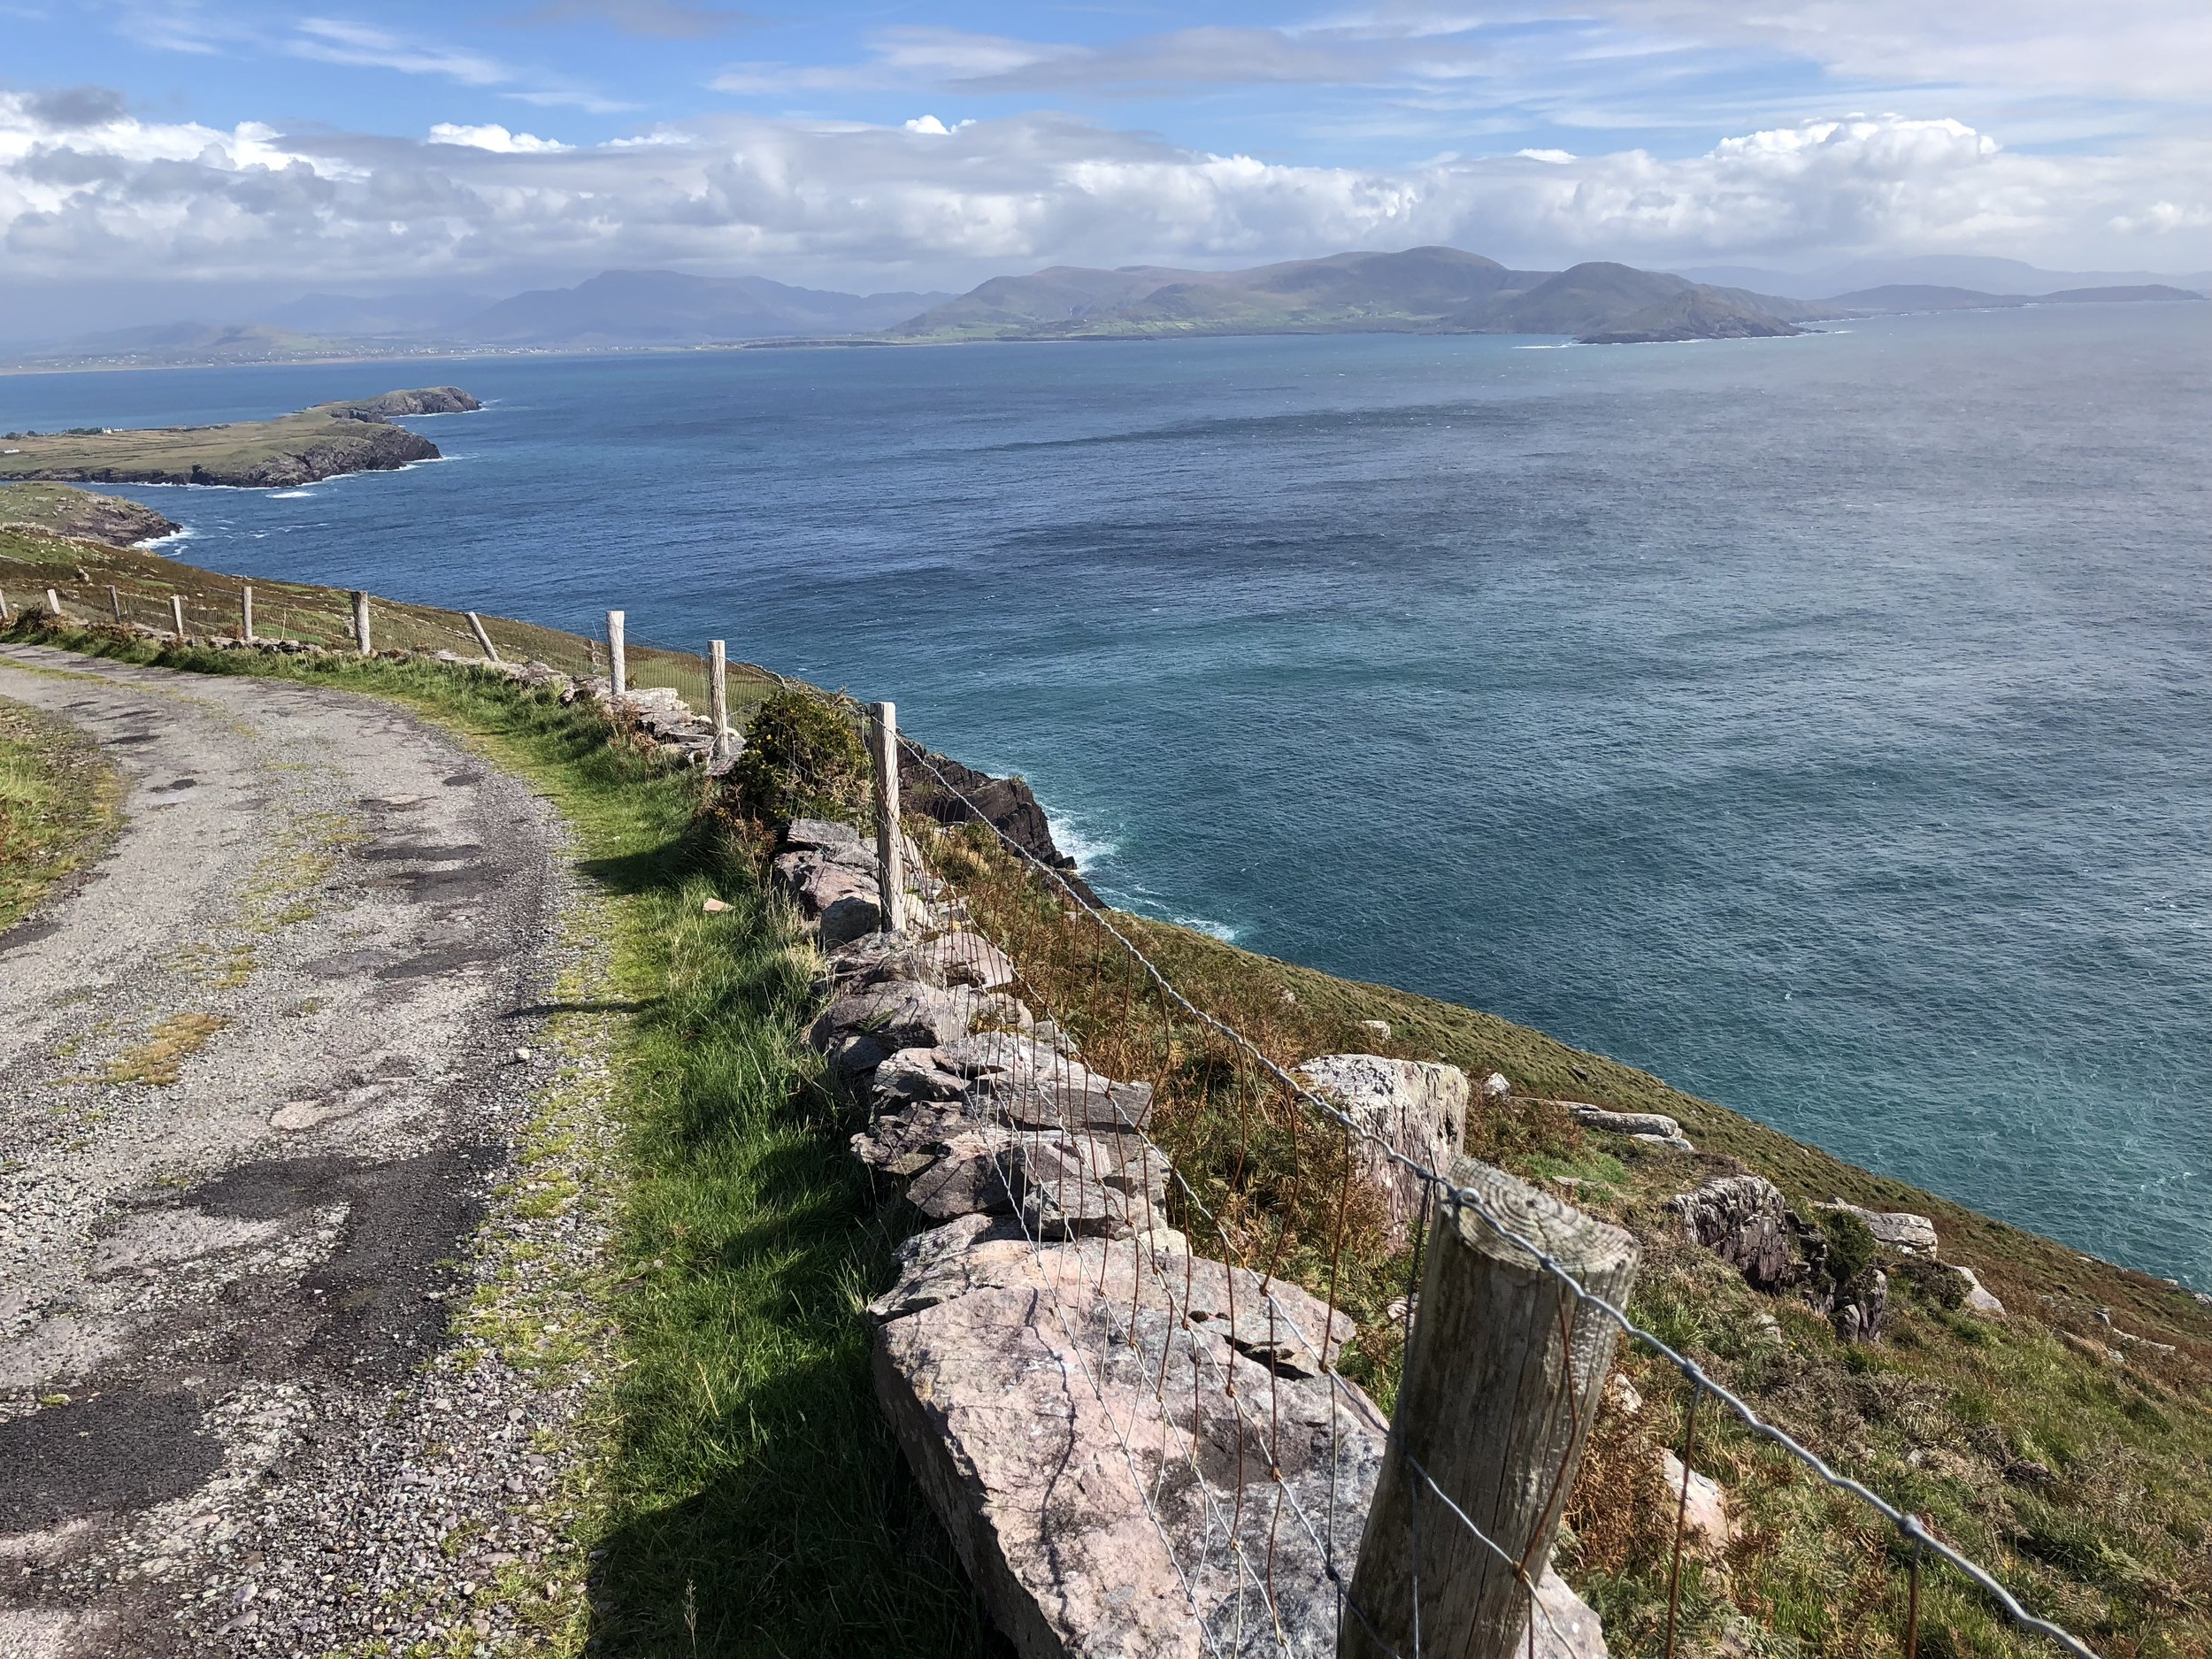 Looking back on the road up to Bolus Head.